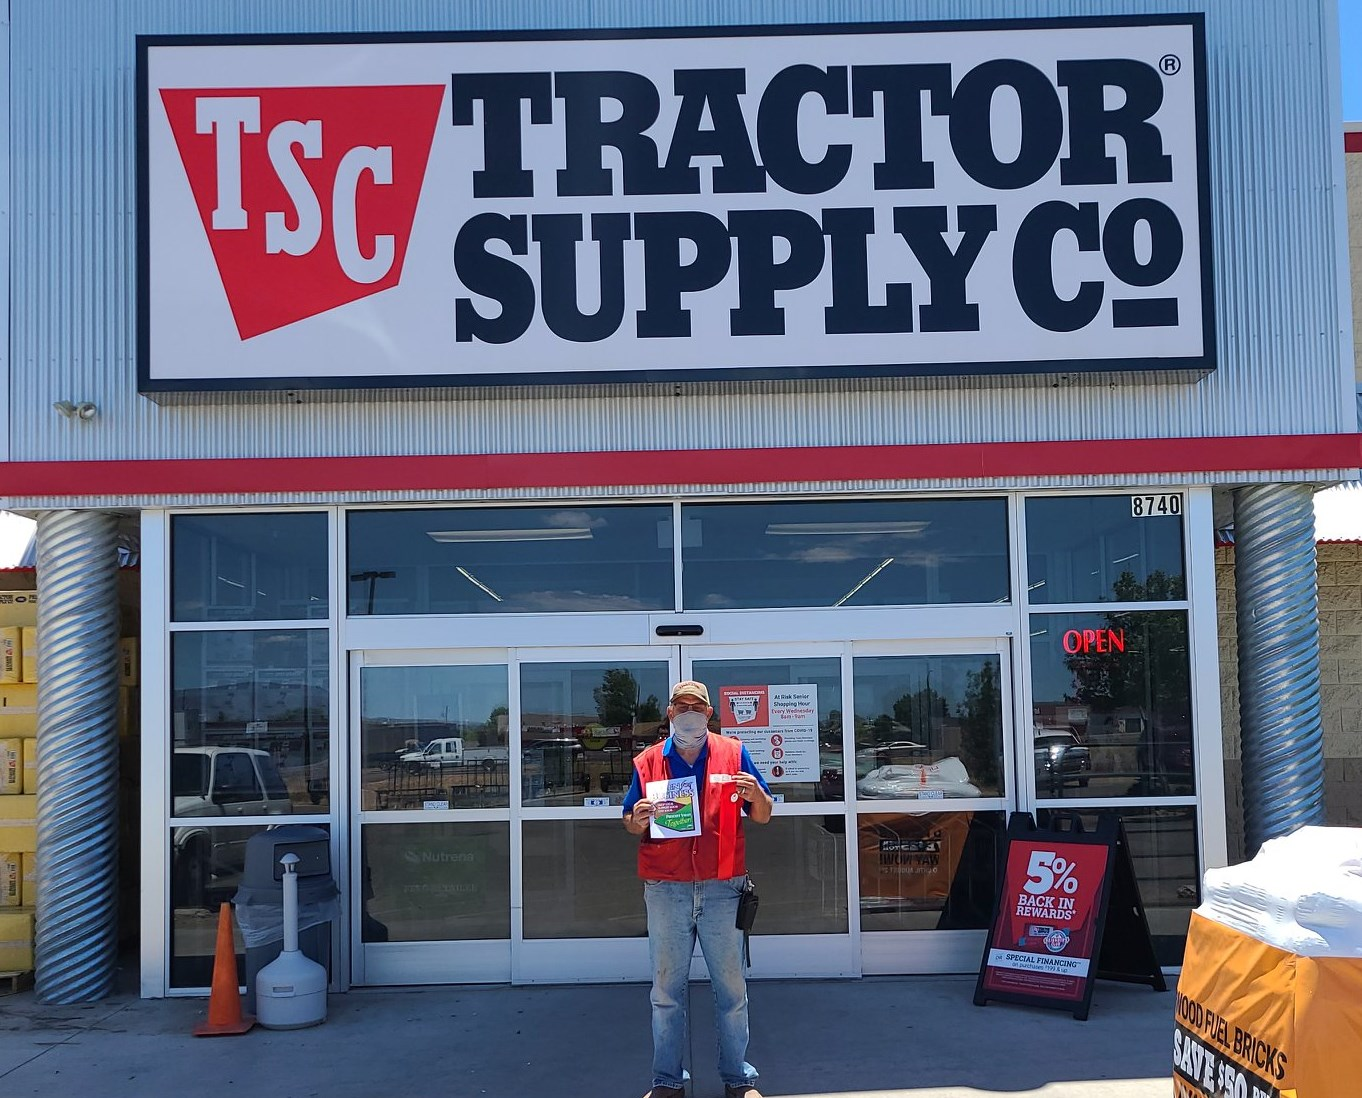 Tractor-Supply-co.jpg